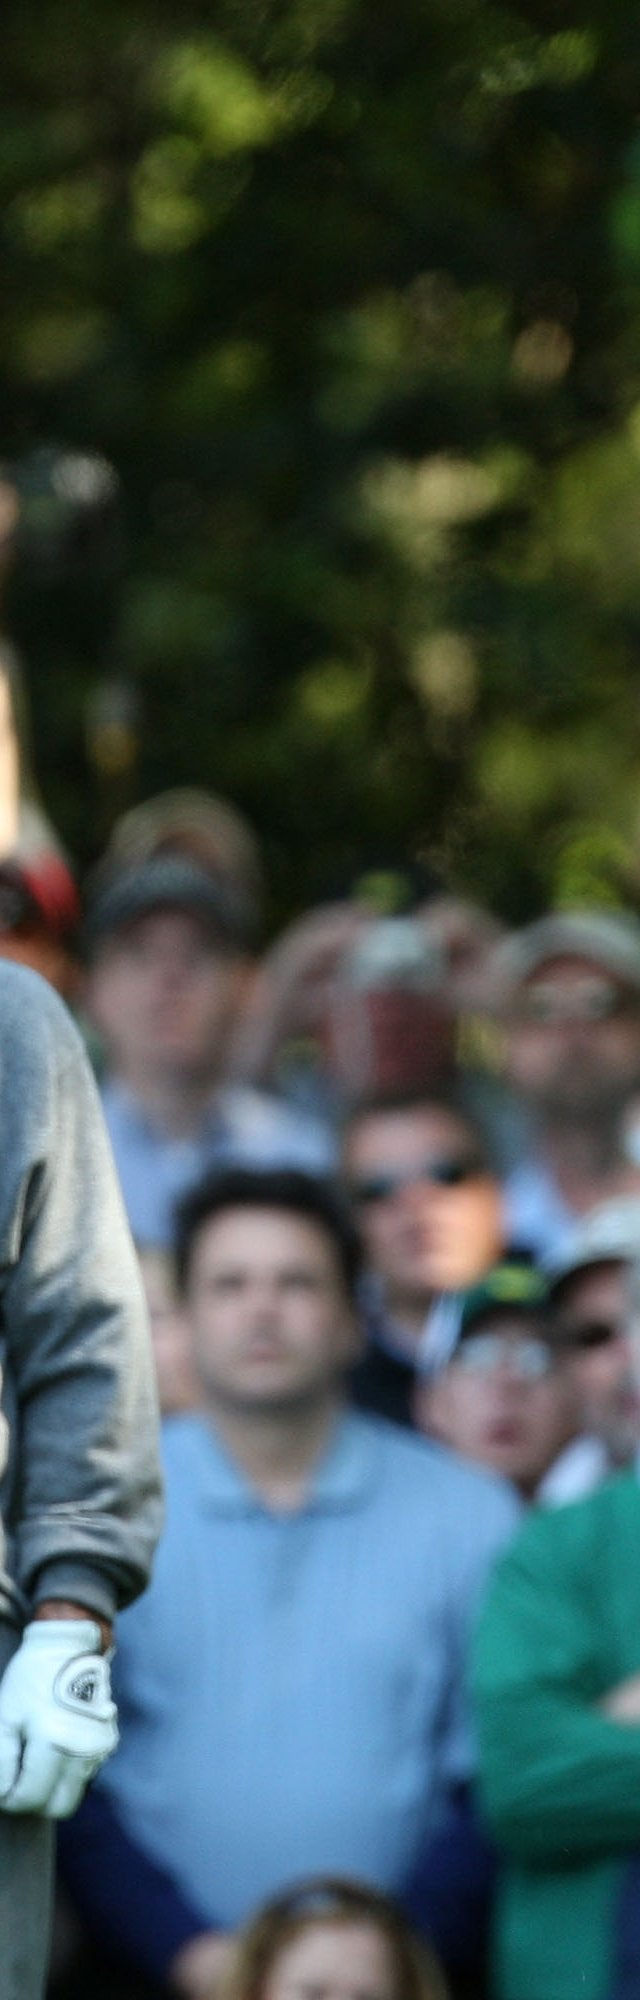 Jack Nicklaus hits a shot while Arnold Palmer looks on during the Par 3 Contest prior to the 2009 Masters.